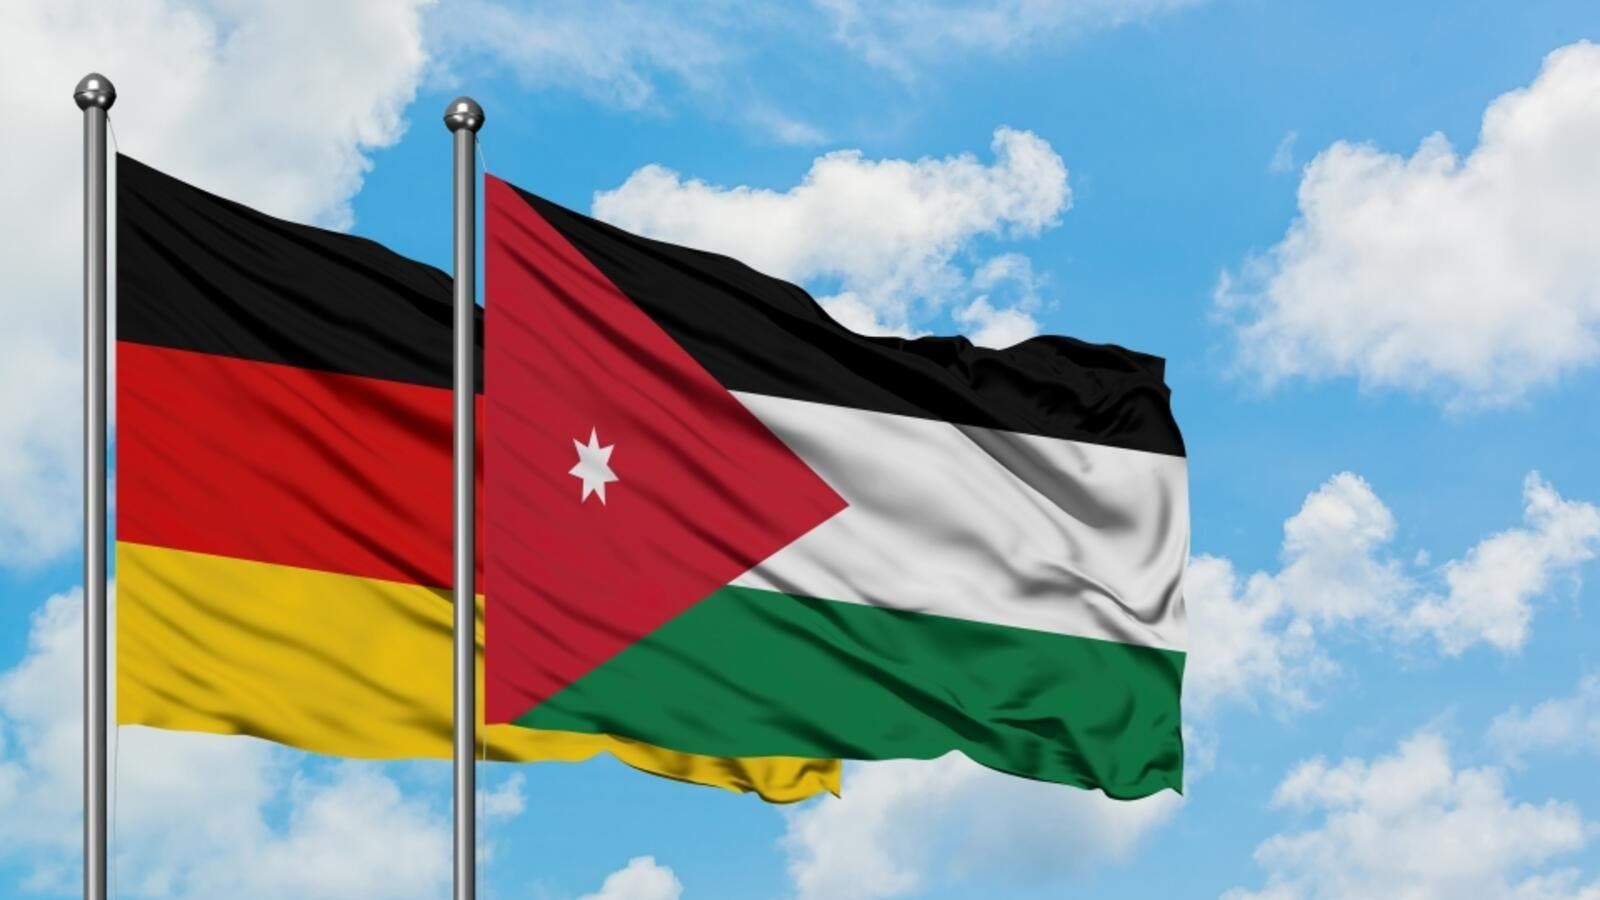 Germany is the second largest donor to Jordan.